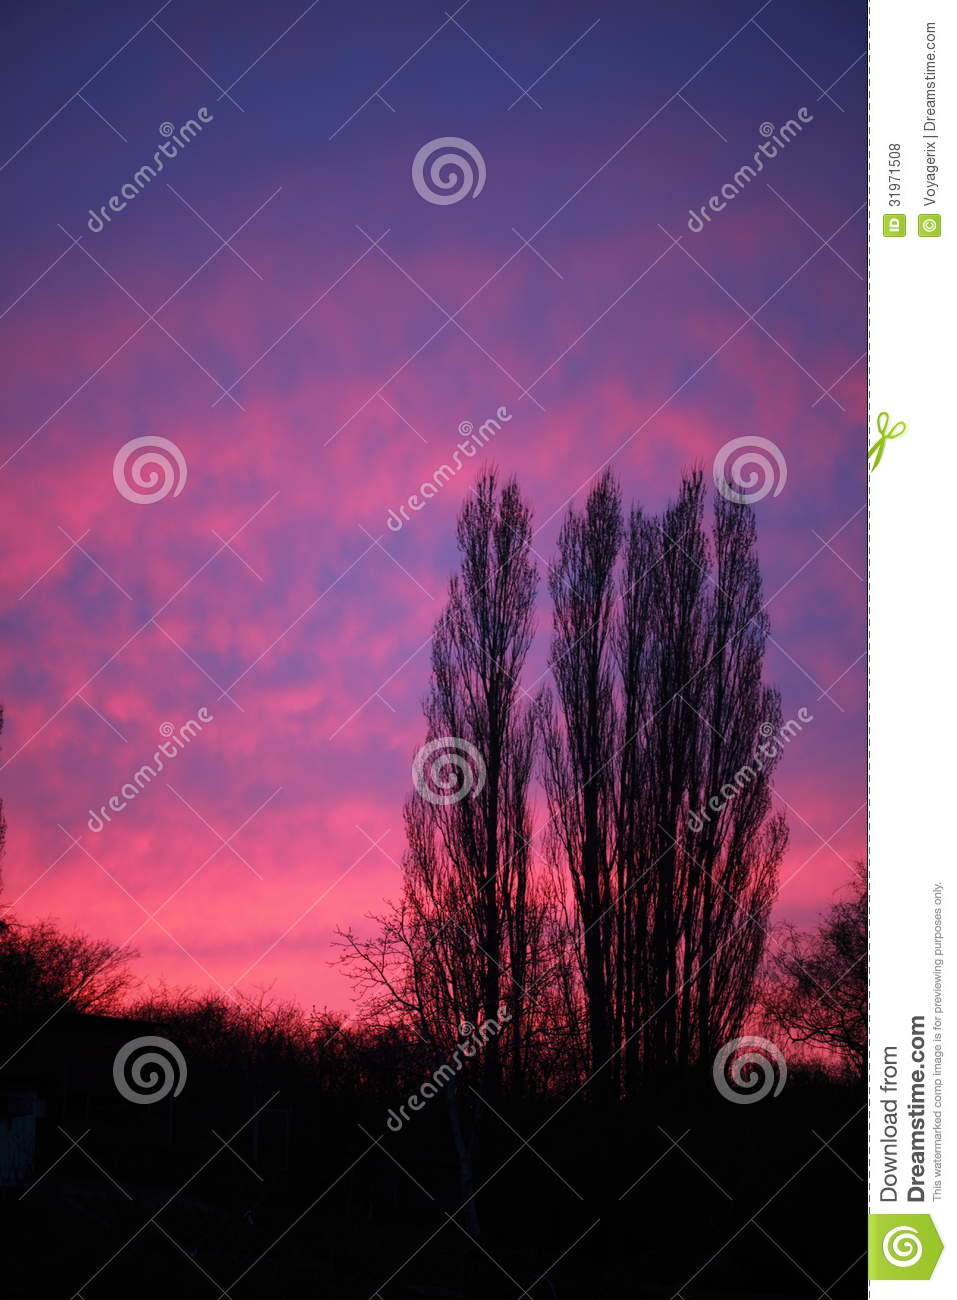 Dramatic Pink Eye Makeup: Dramatic Pink Sky And Trees Sunset Or Sunrise Royalty Free